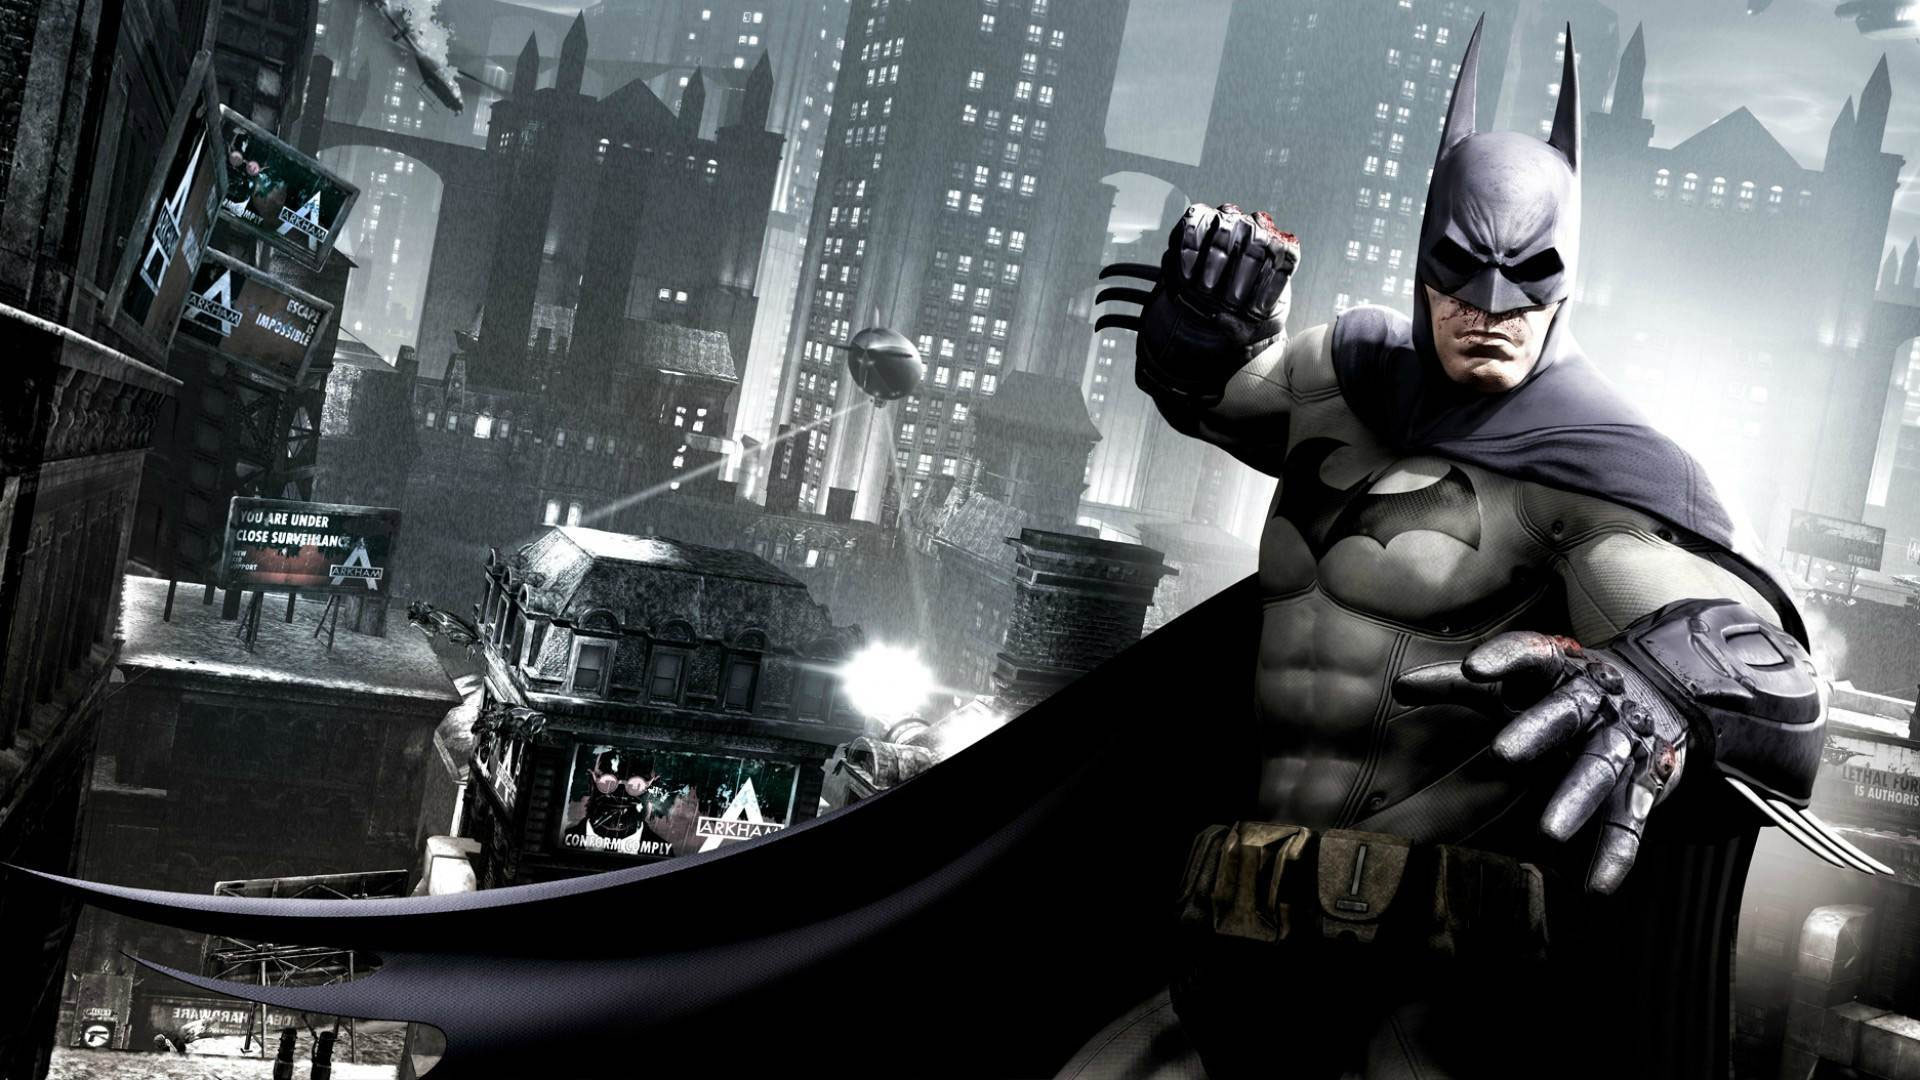 1920x1080 Batman Wallpaper HD 3D Download